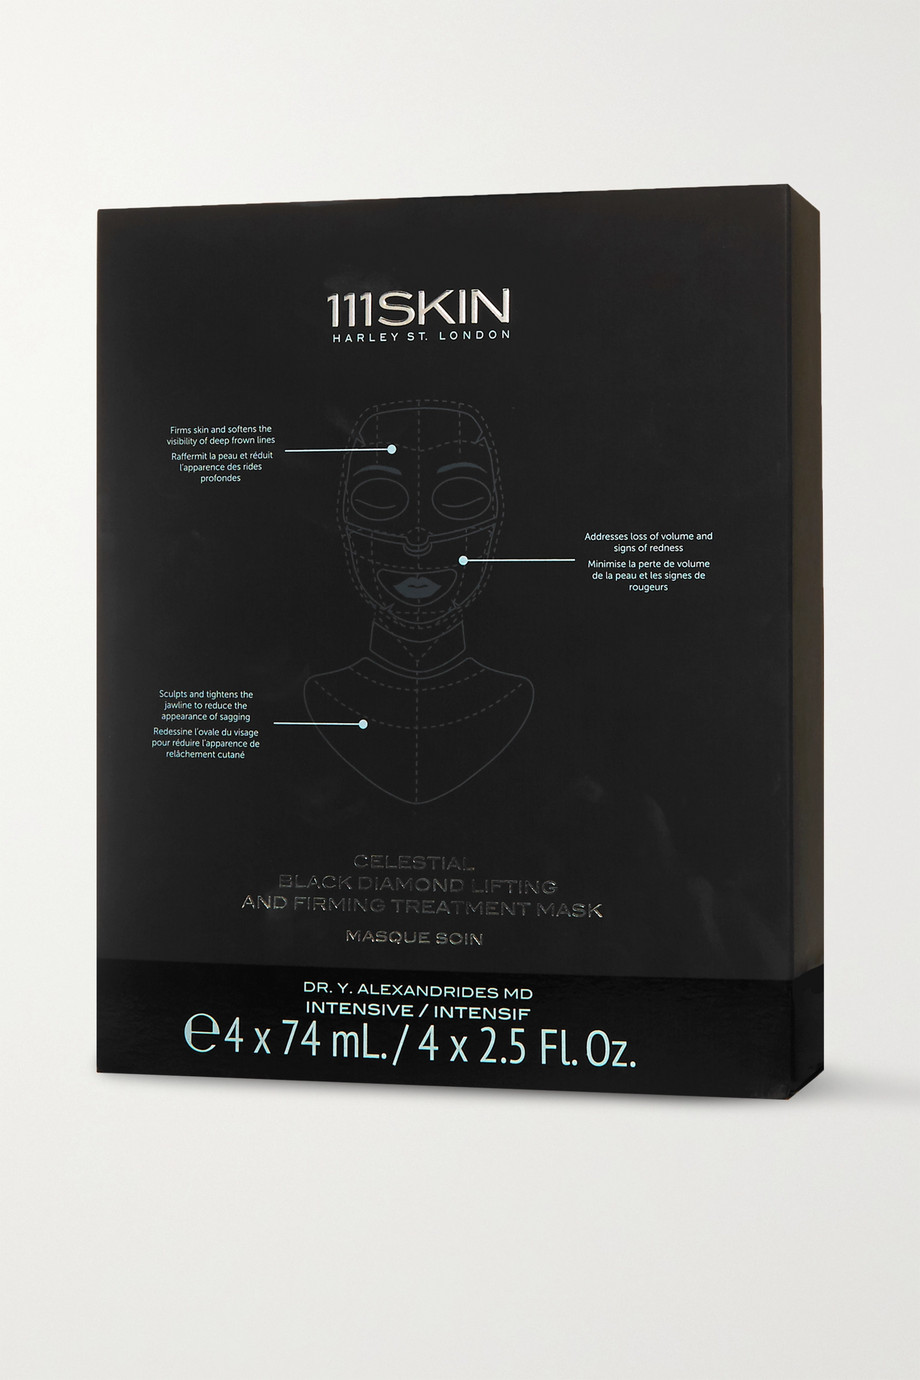 111SKIN Celestial Black Diamond Lifting and Firming Mask, 4 x 74ml